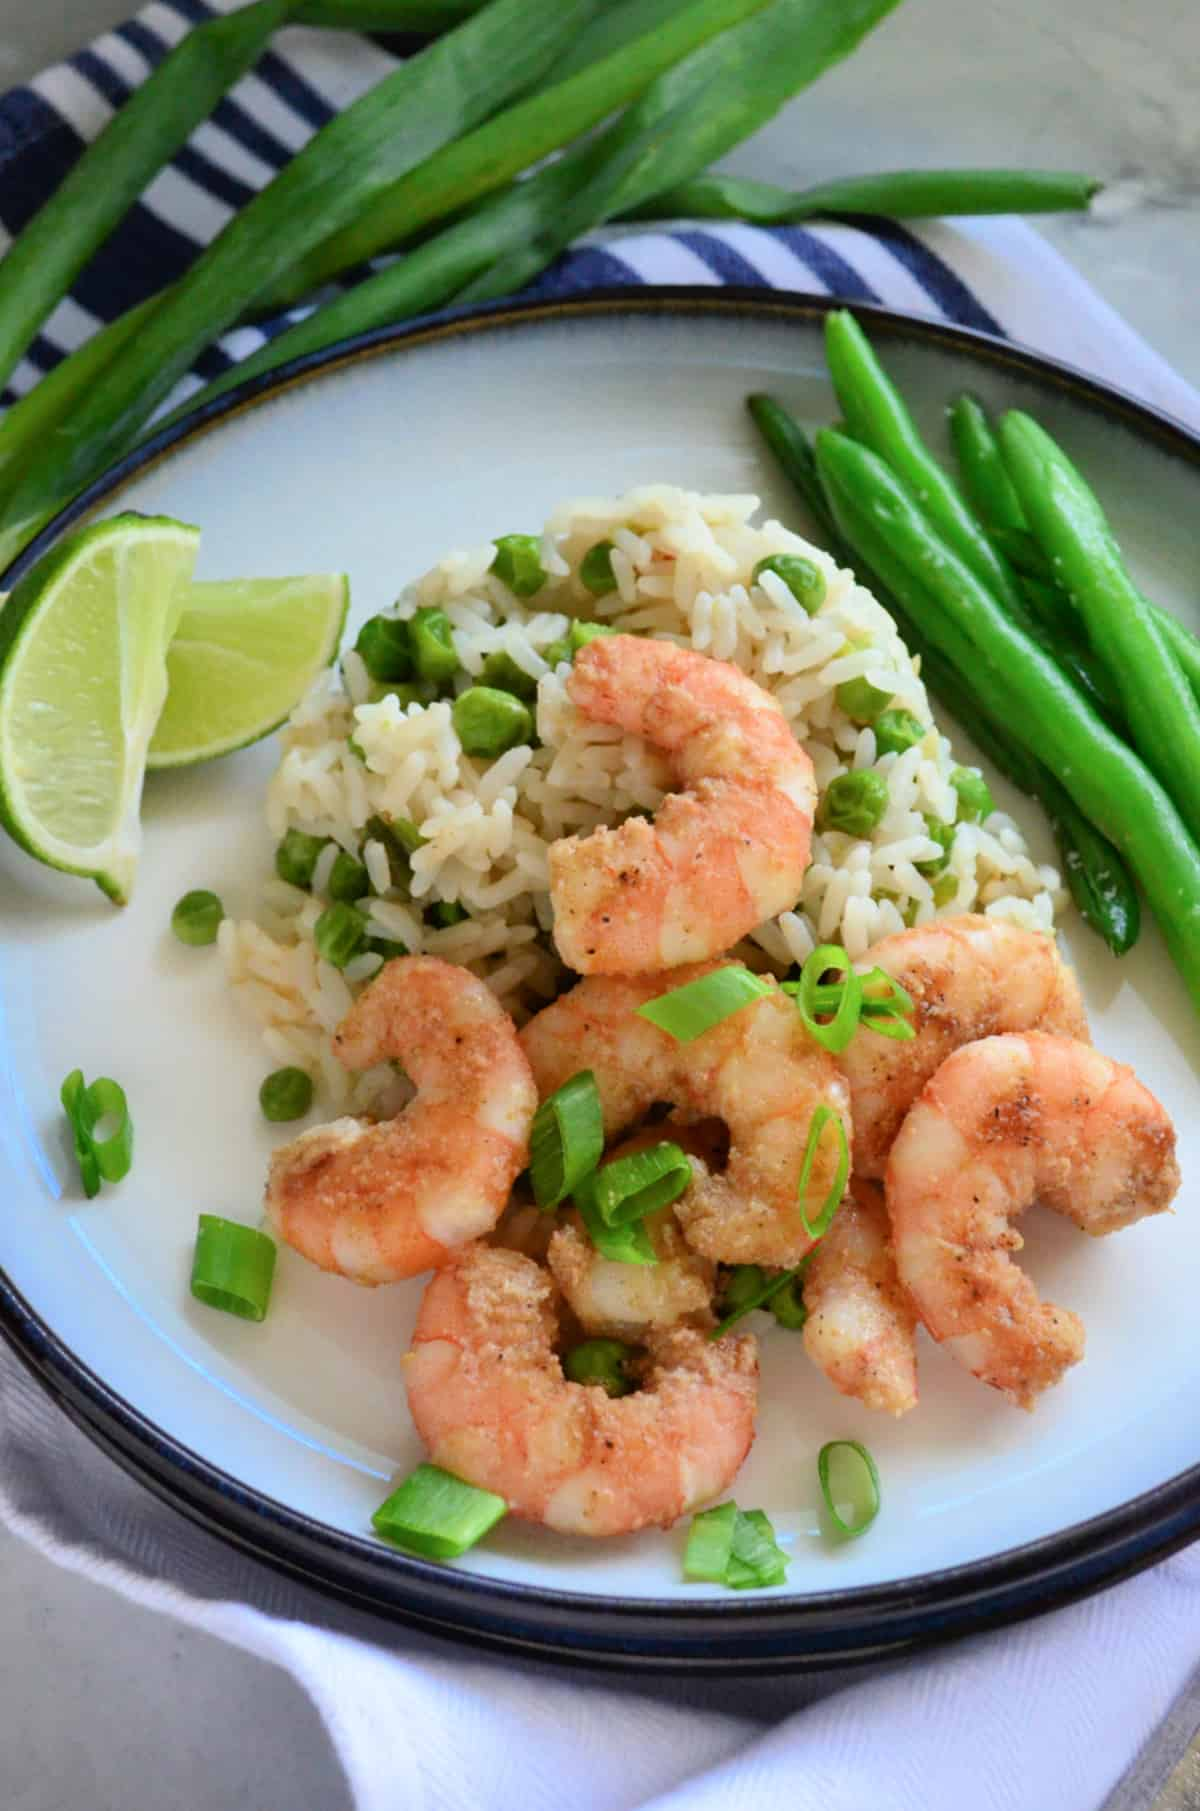 White plate with a blue rim sitting on a counter filled with shrimp, rice, green peas, green onions, and green beans.